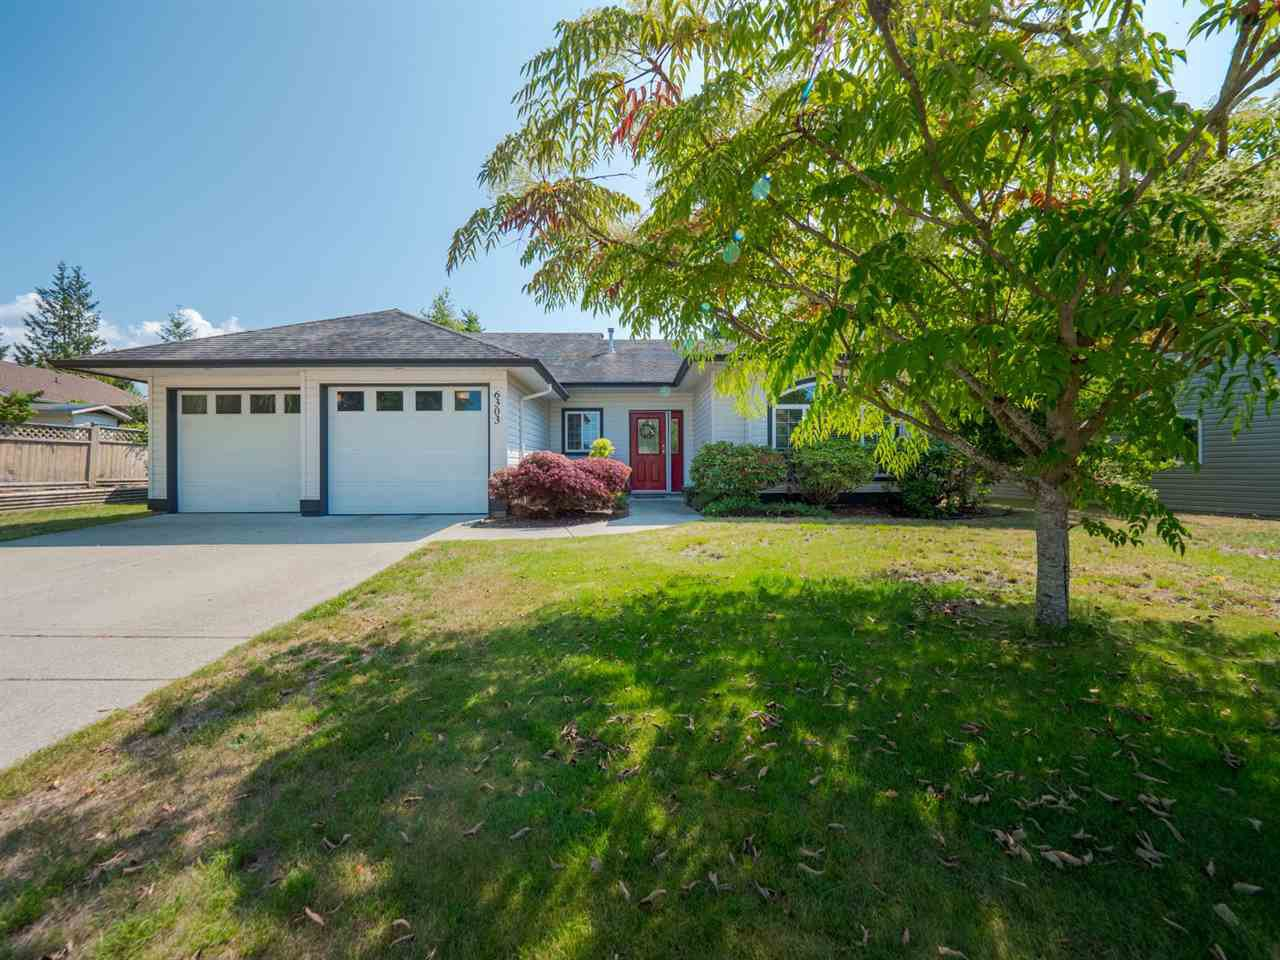 Main Photo: 6303 HOMESTEAD Avenue in Sechelt: Sechelt District House for sale (Sunshine Coast)  : MLS®# R2394293